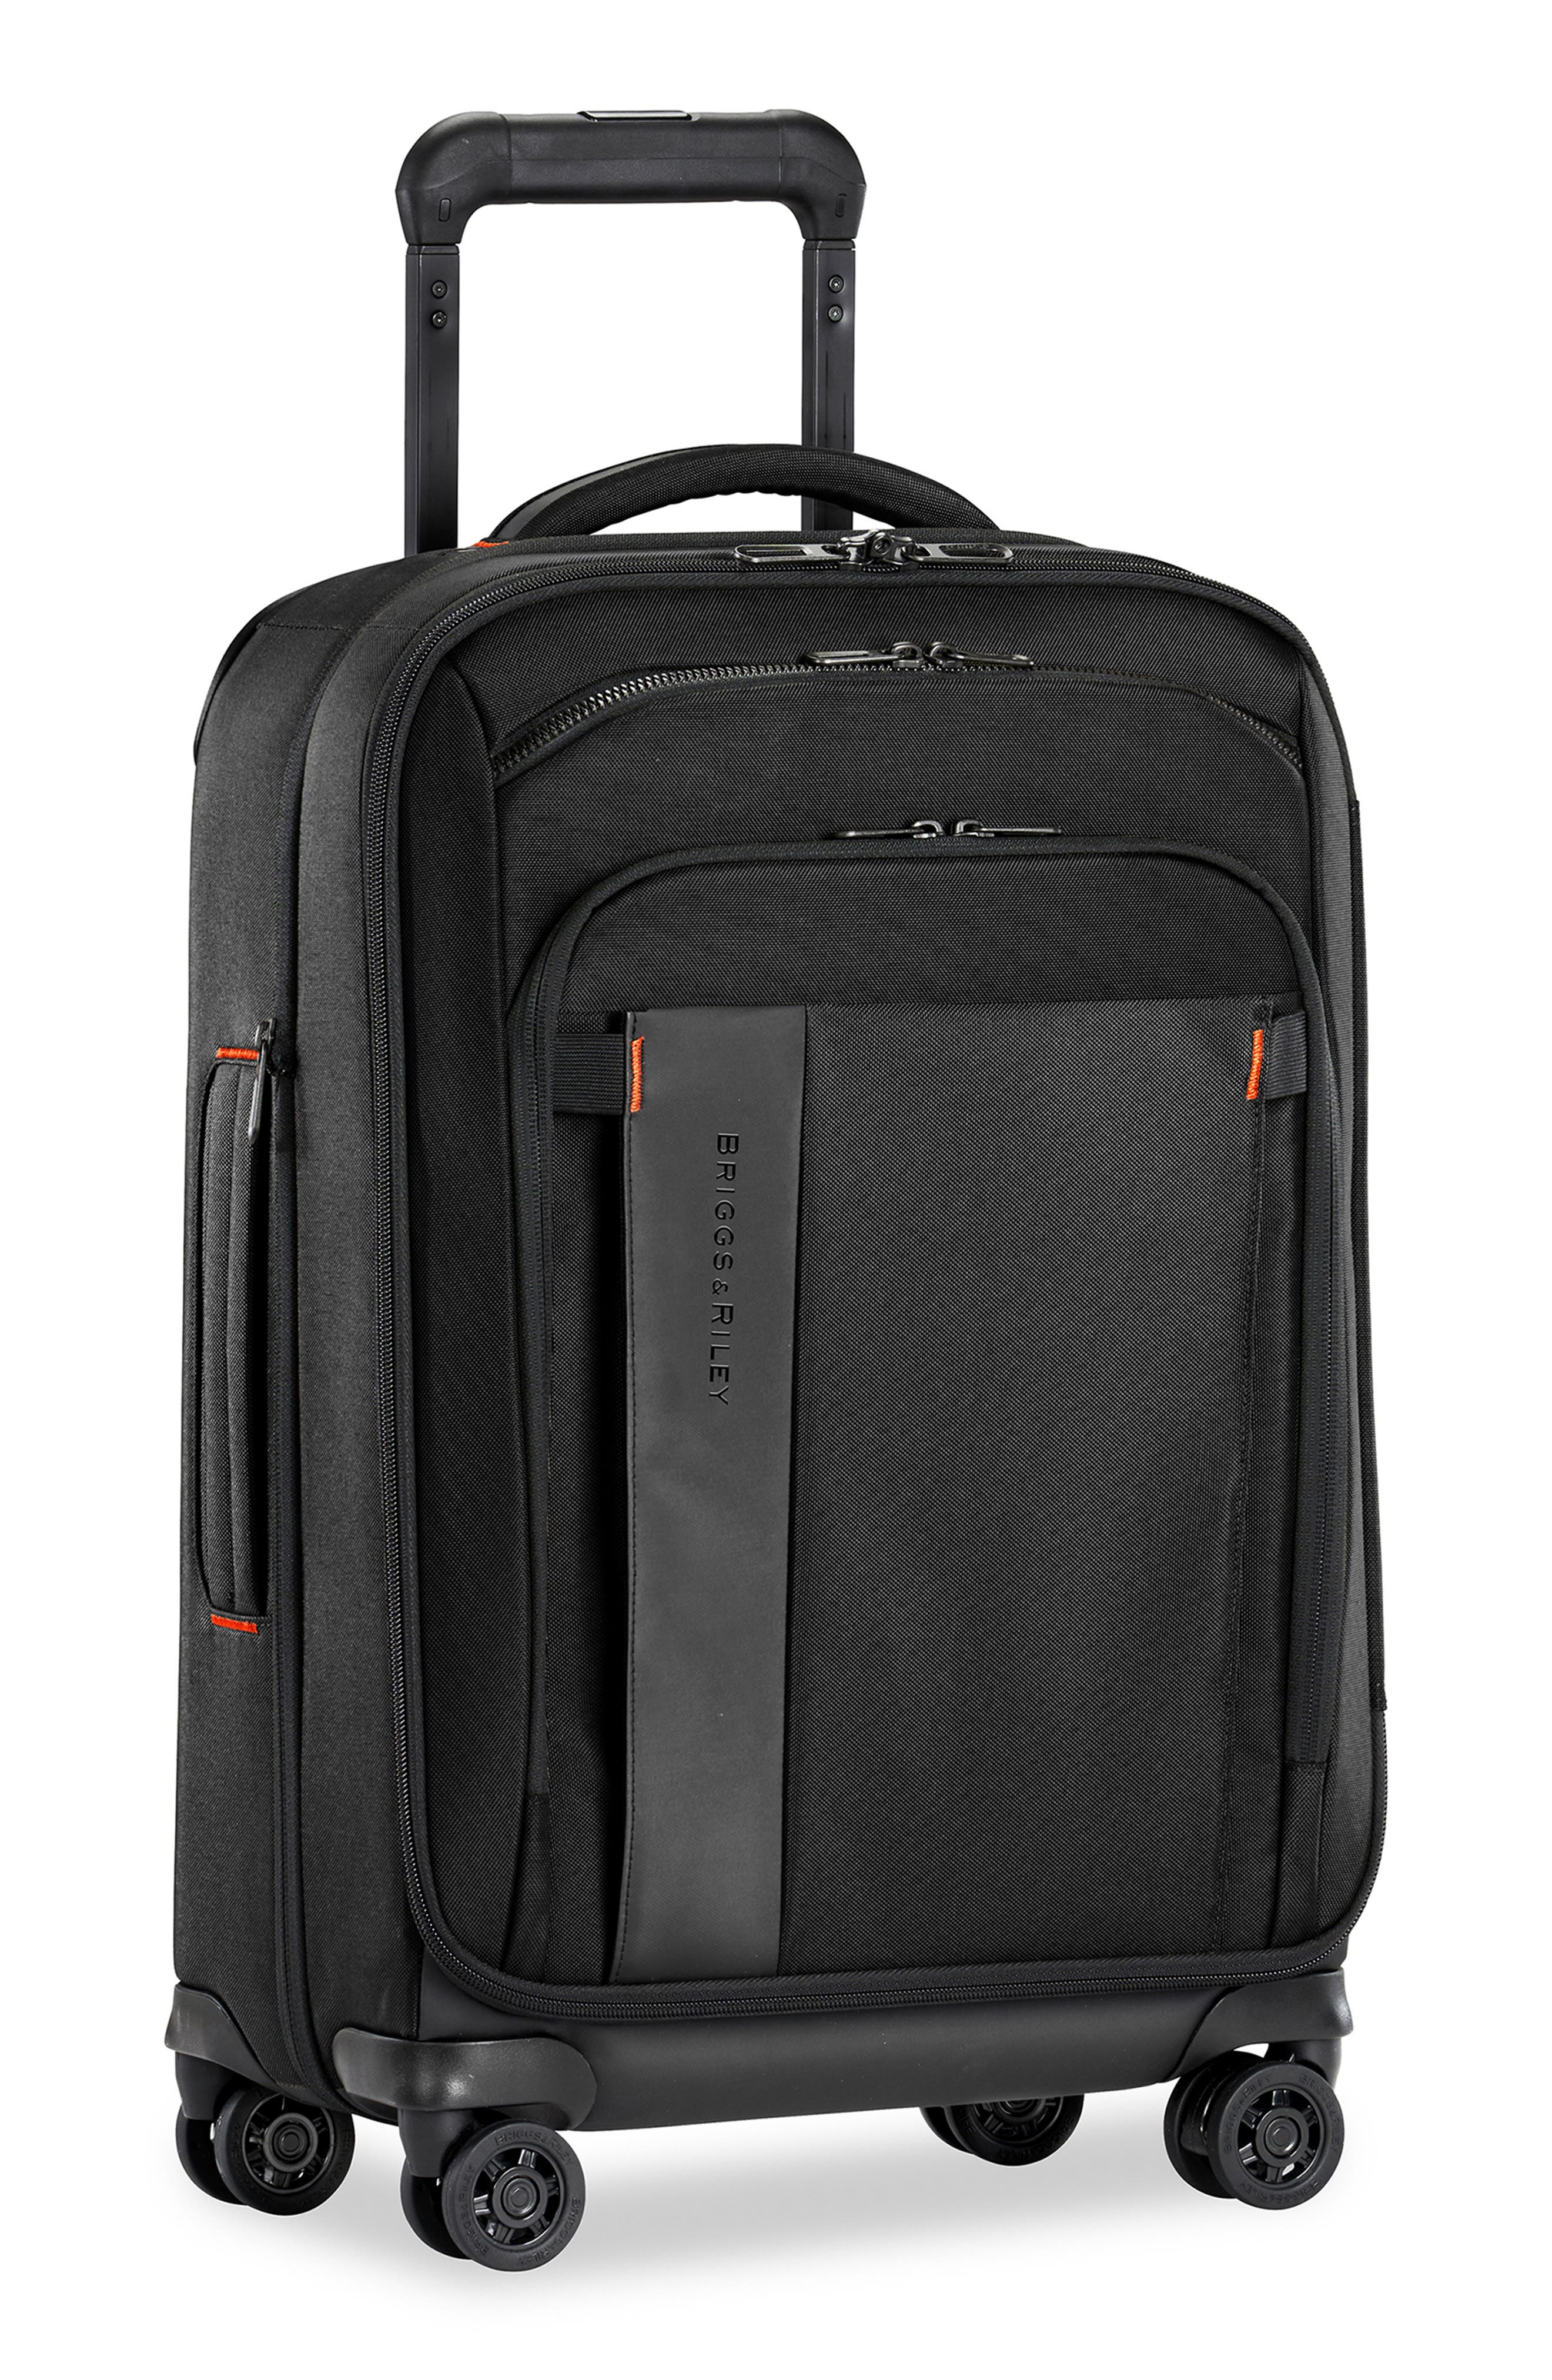 Zdx 22-Inch Expandable Spinner Suitcase